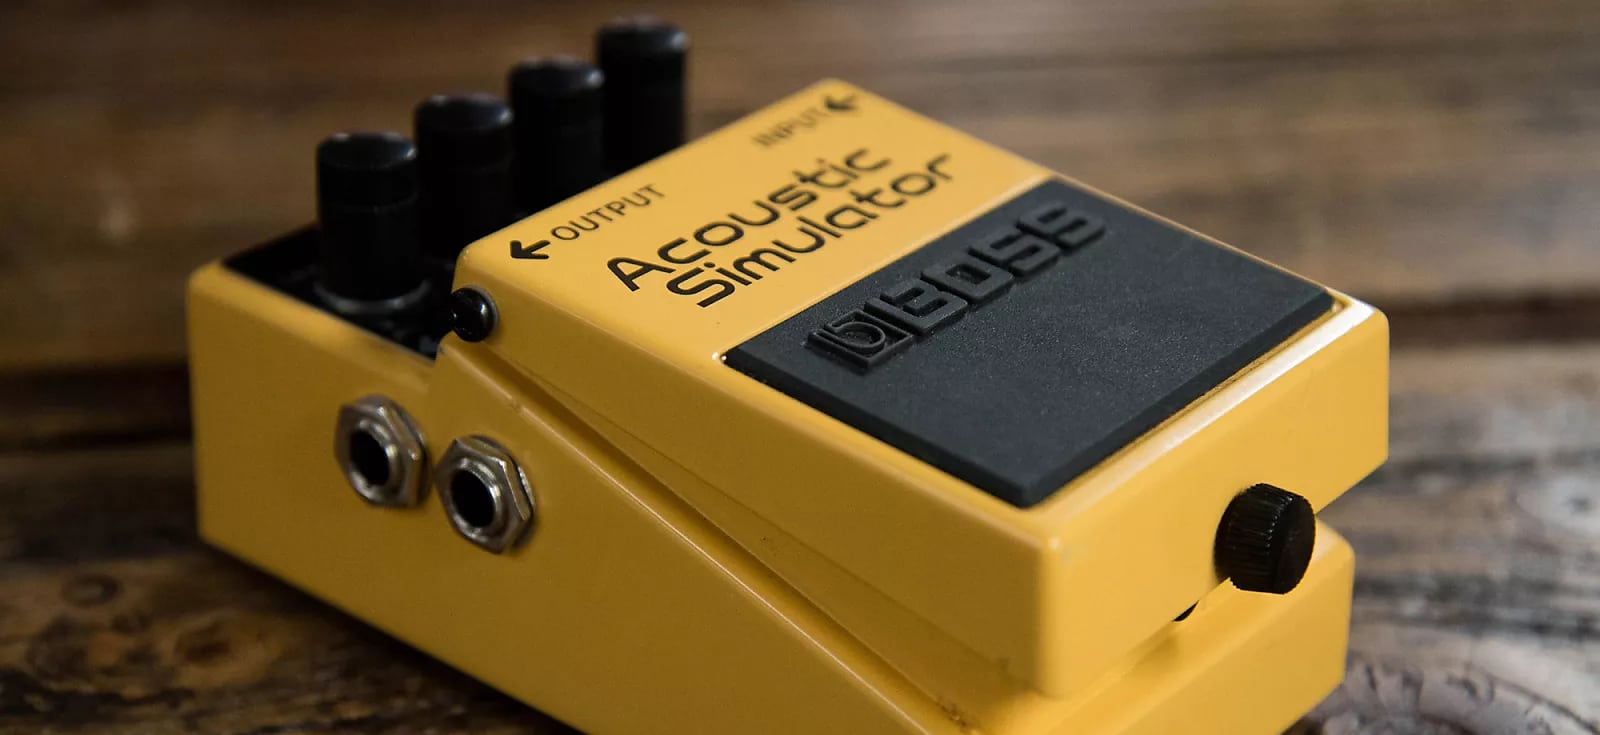 Best Acoustic Simulator Pedals Reviewed in Detail [Jan. 2020]